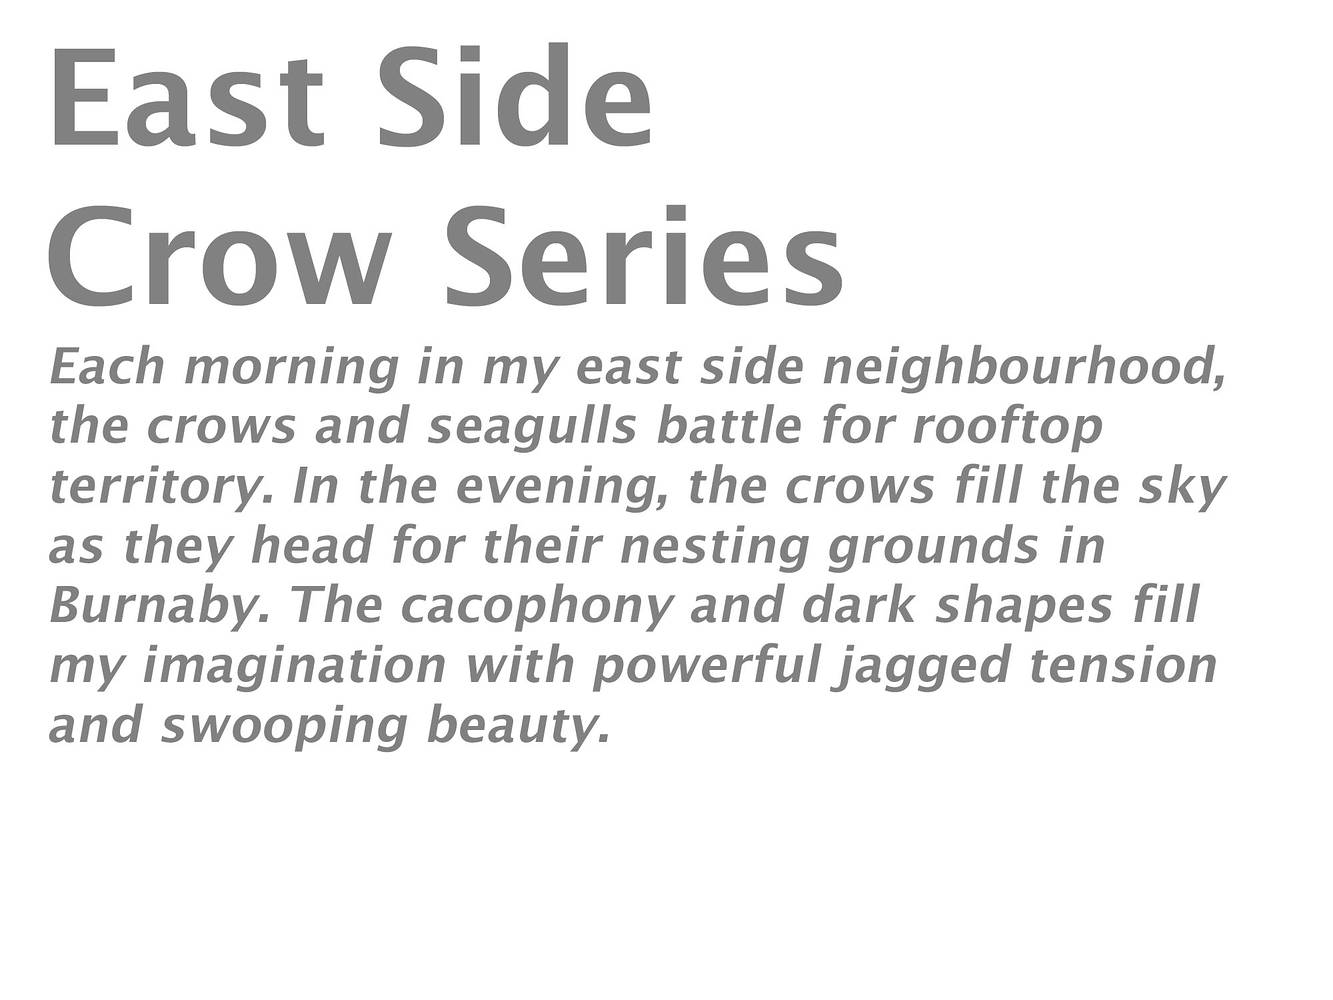 East Side Crow Series Statement by Lori Sokoluk